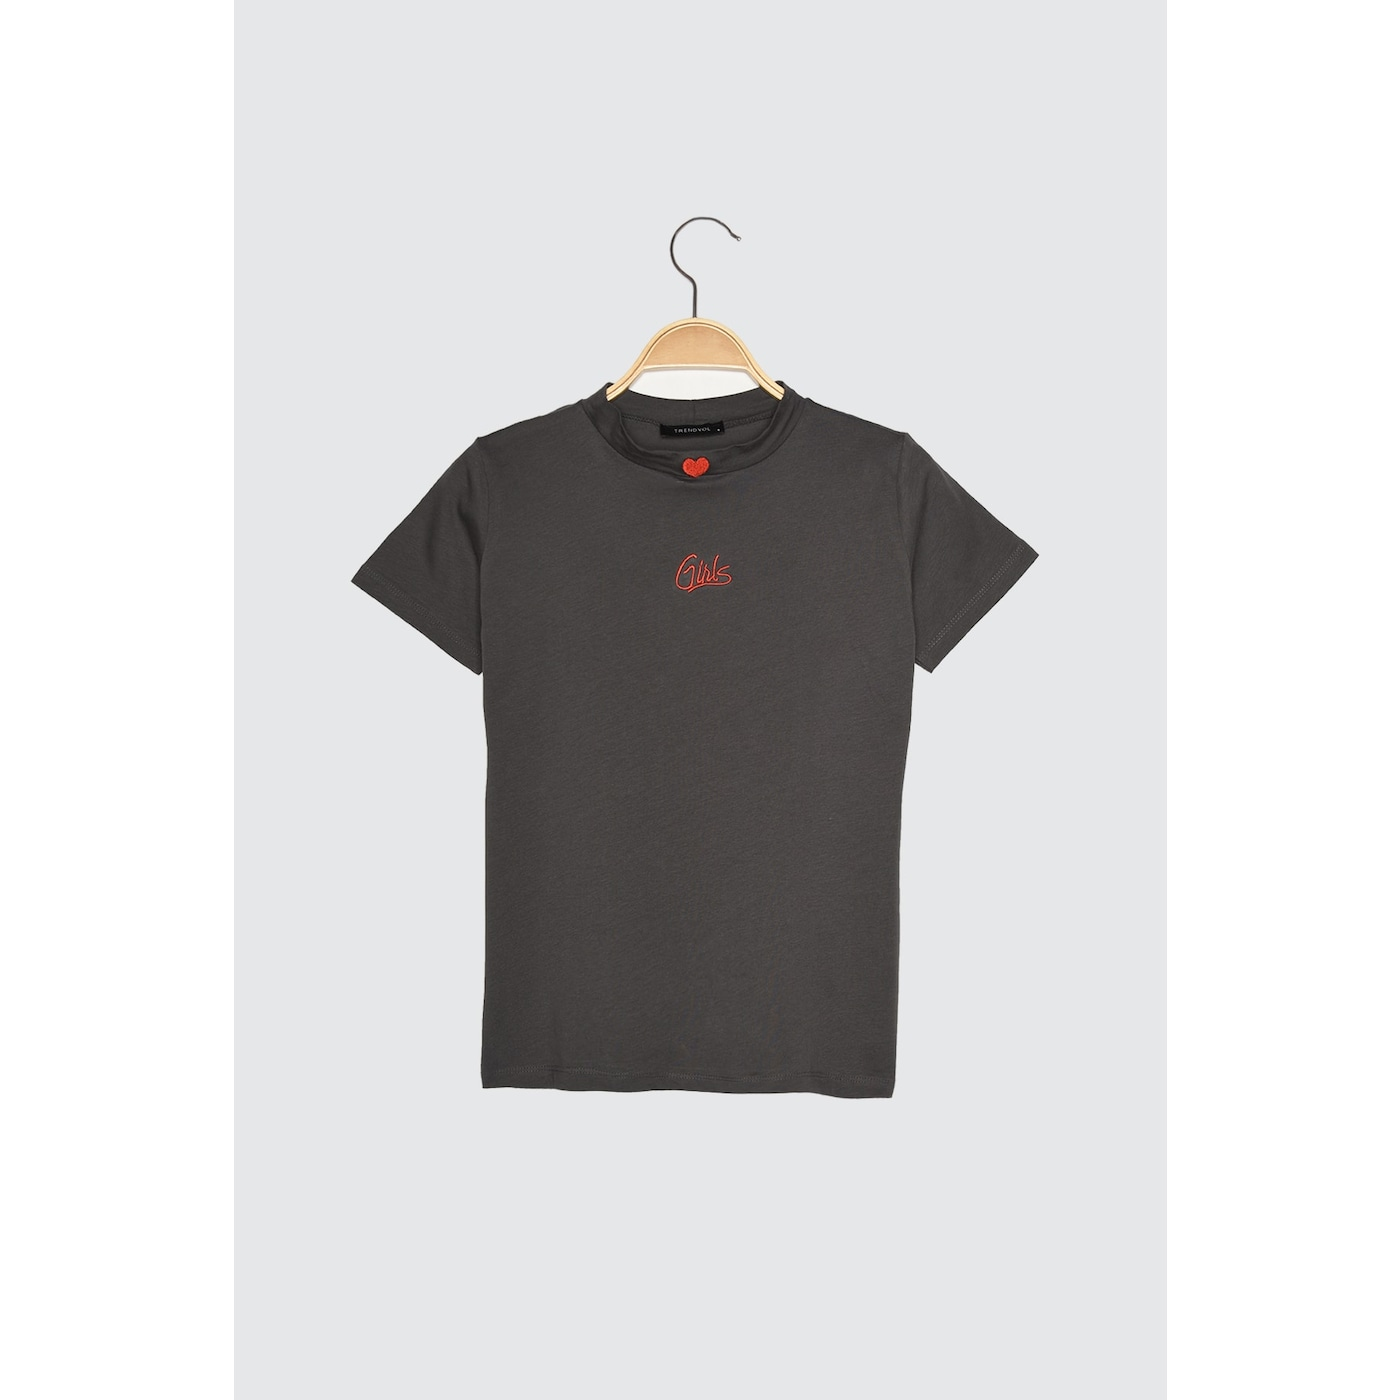 Trendyol Anthracite Embroidered Upright Collar Basic Knitted T-Shirt dámské XS